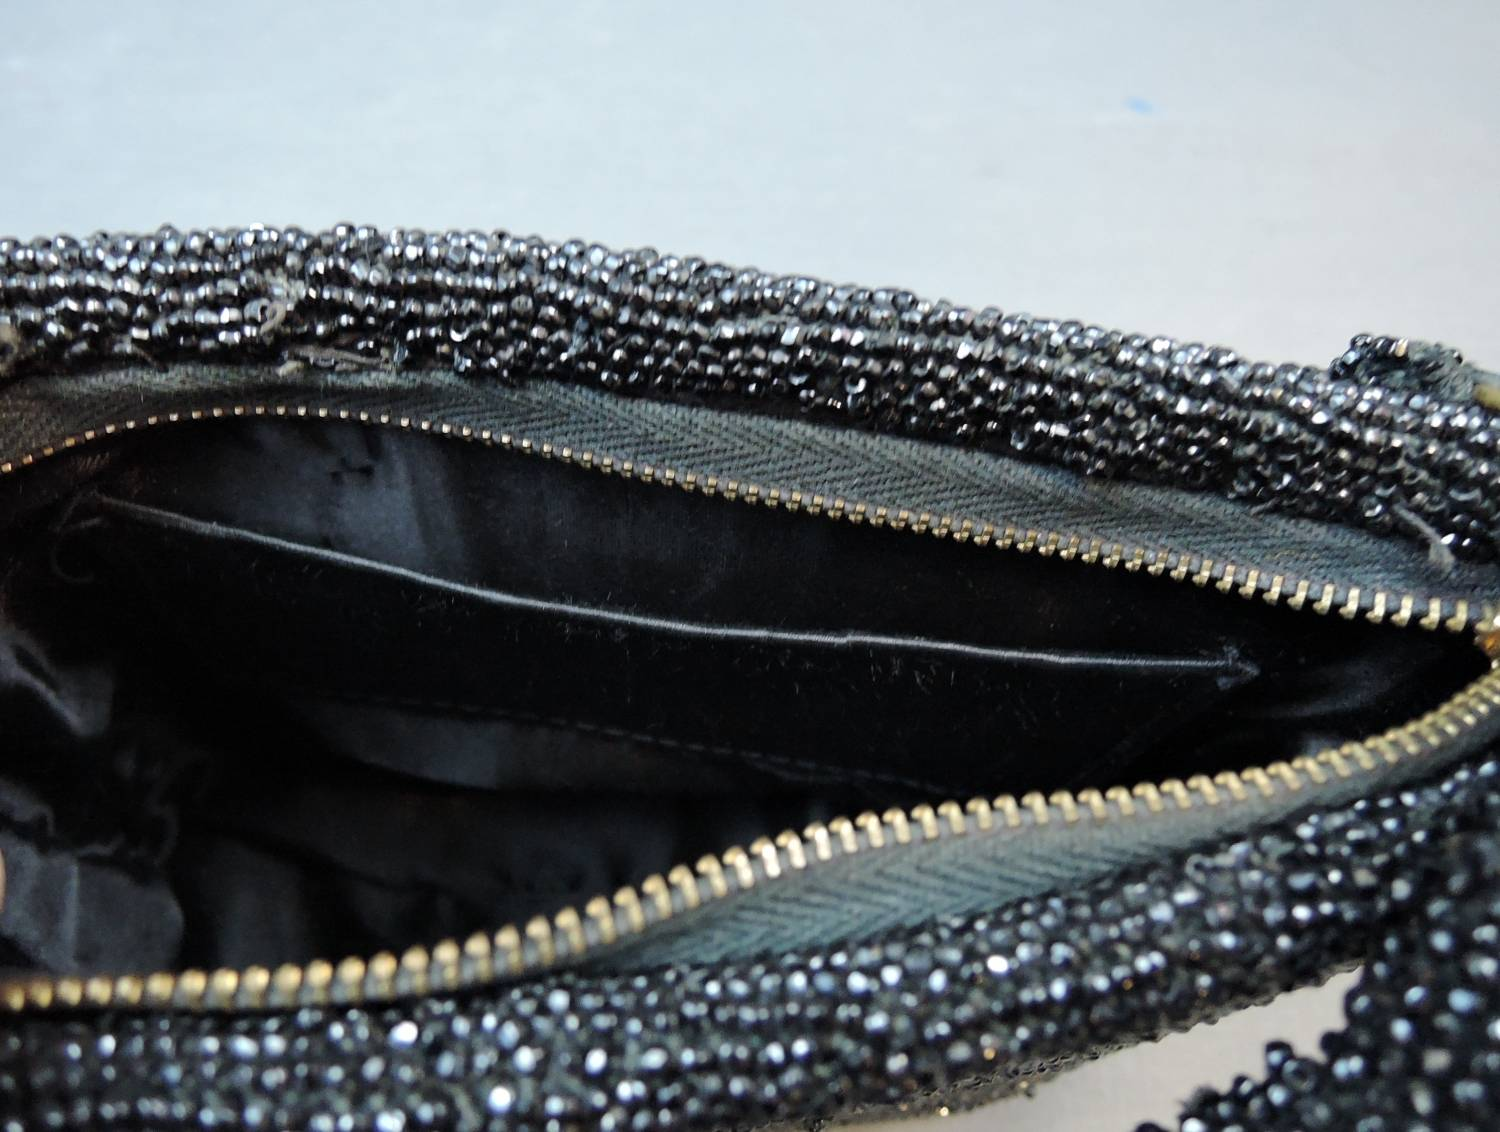 Vintage 1940s Black Beaded Purse, Evening Bag 8x6 inches